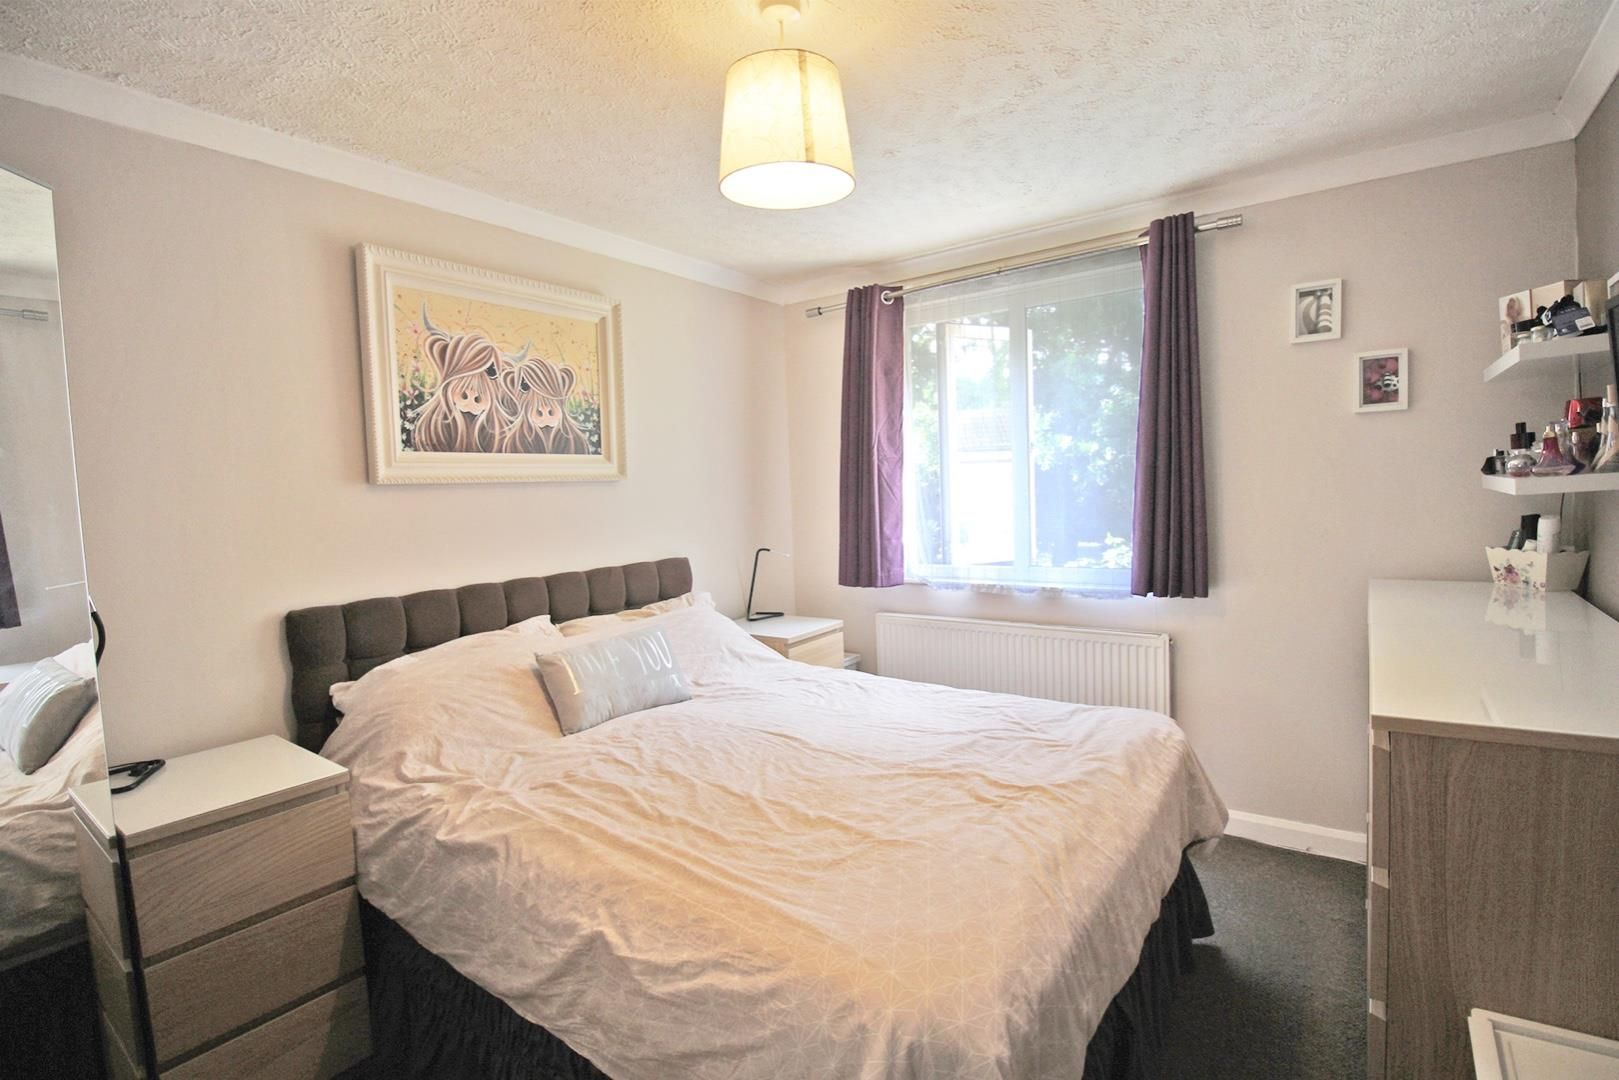 3 bed terraced for sale in Hanworth 8